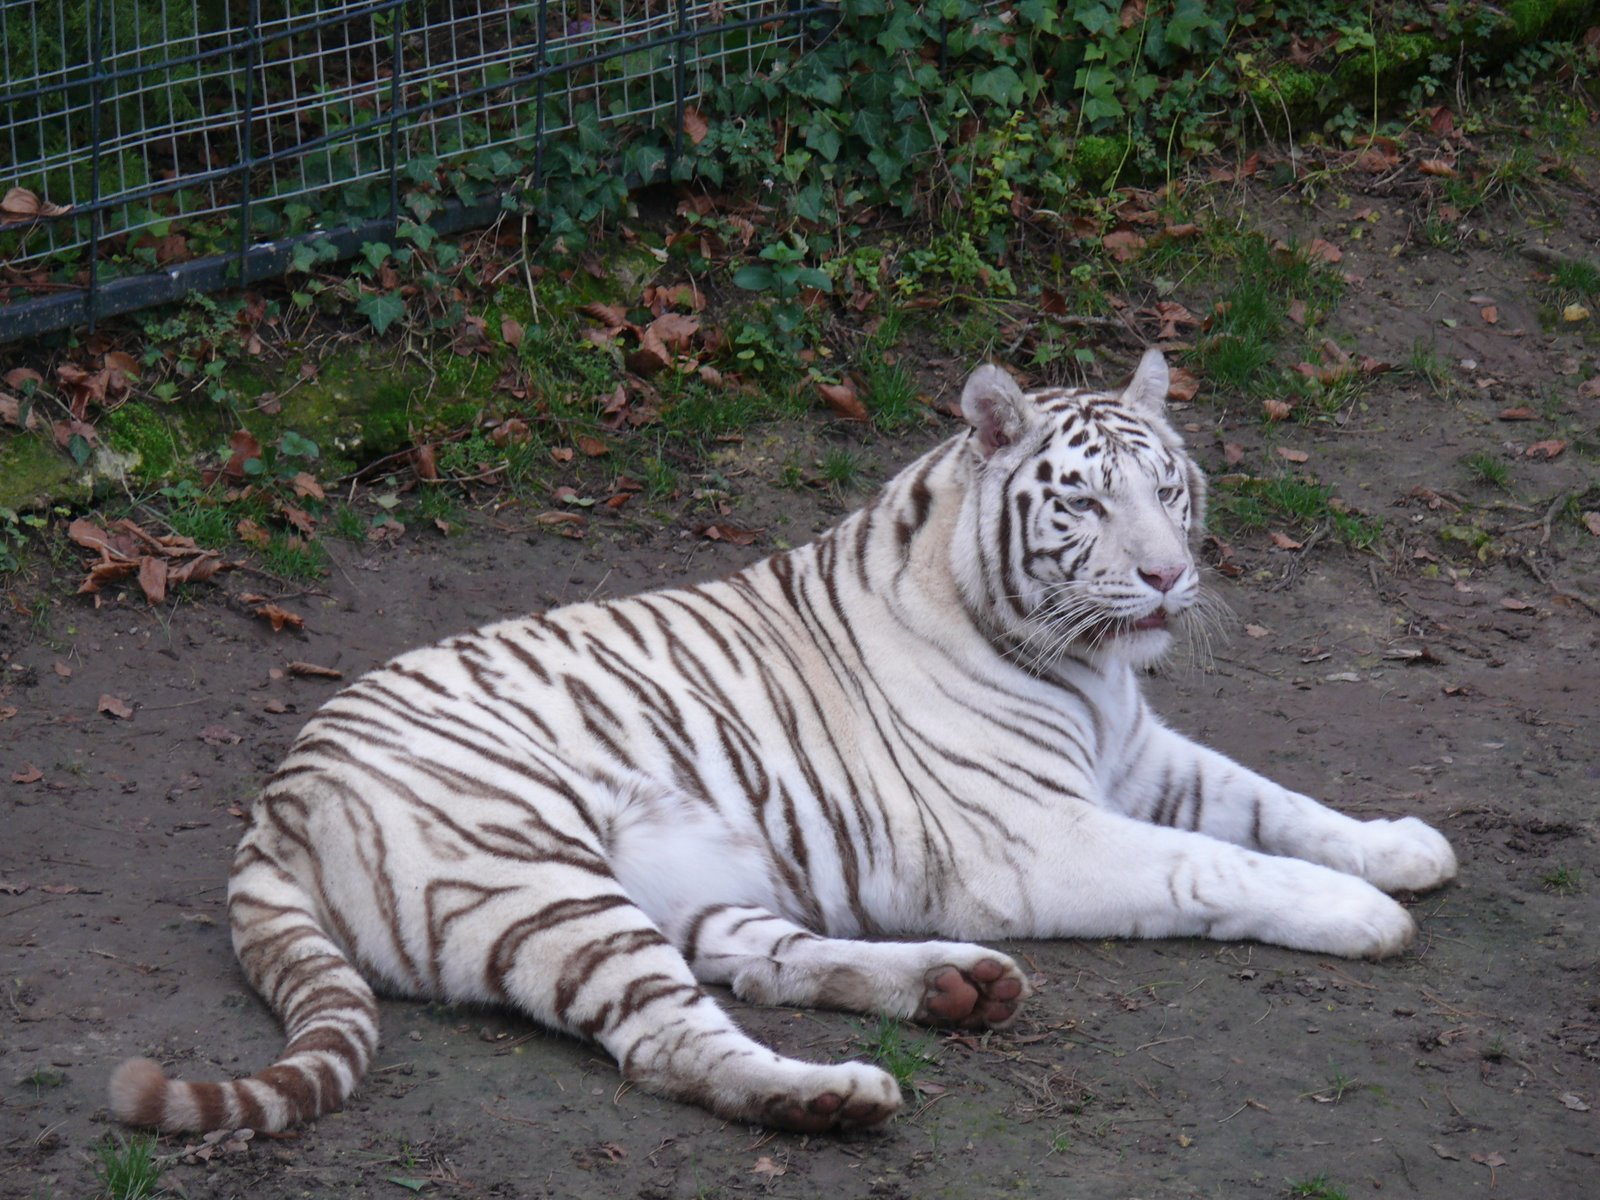 Le zoo de beauval for Appart hotel zoo de beauval